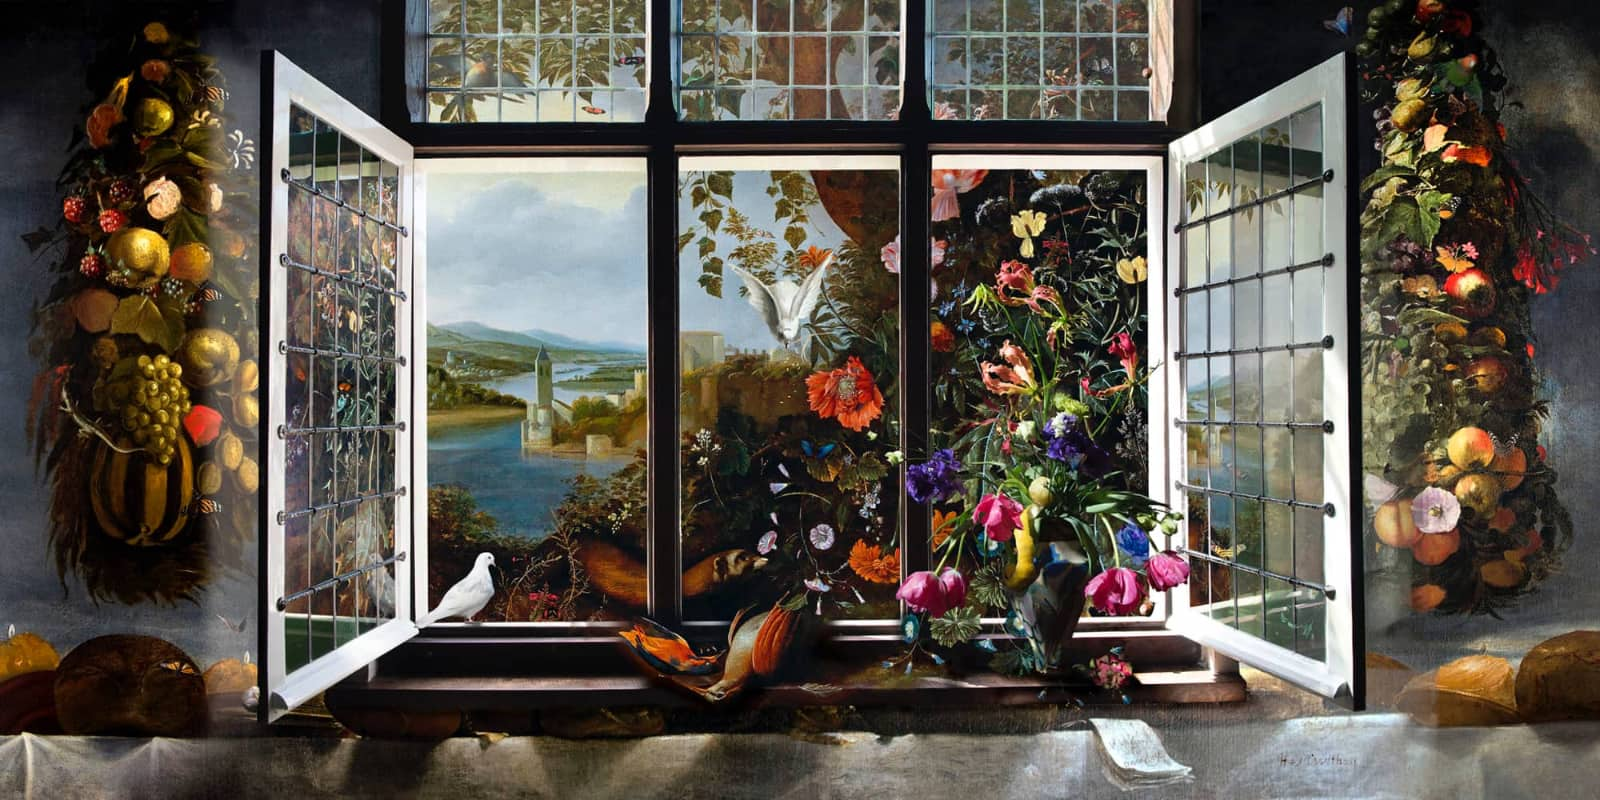 foto: © Hans Withoos - Window to Paradise, 2019 (Withoos meets Withoos)